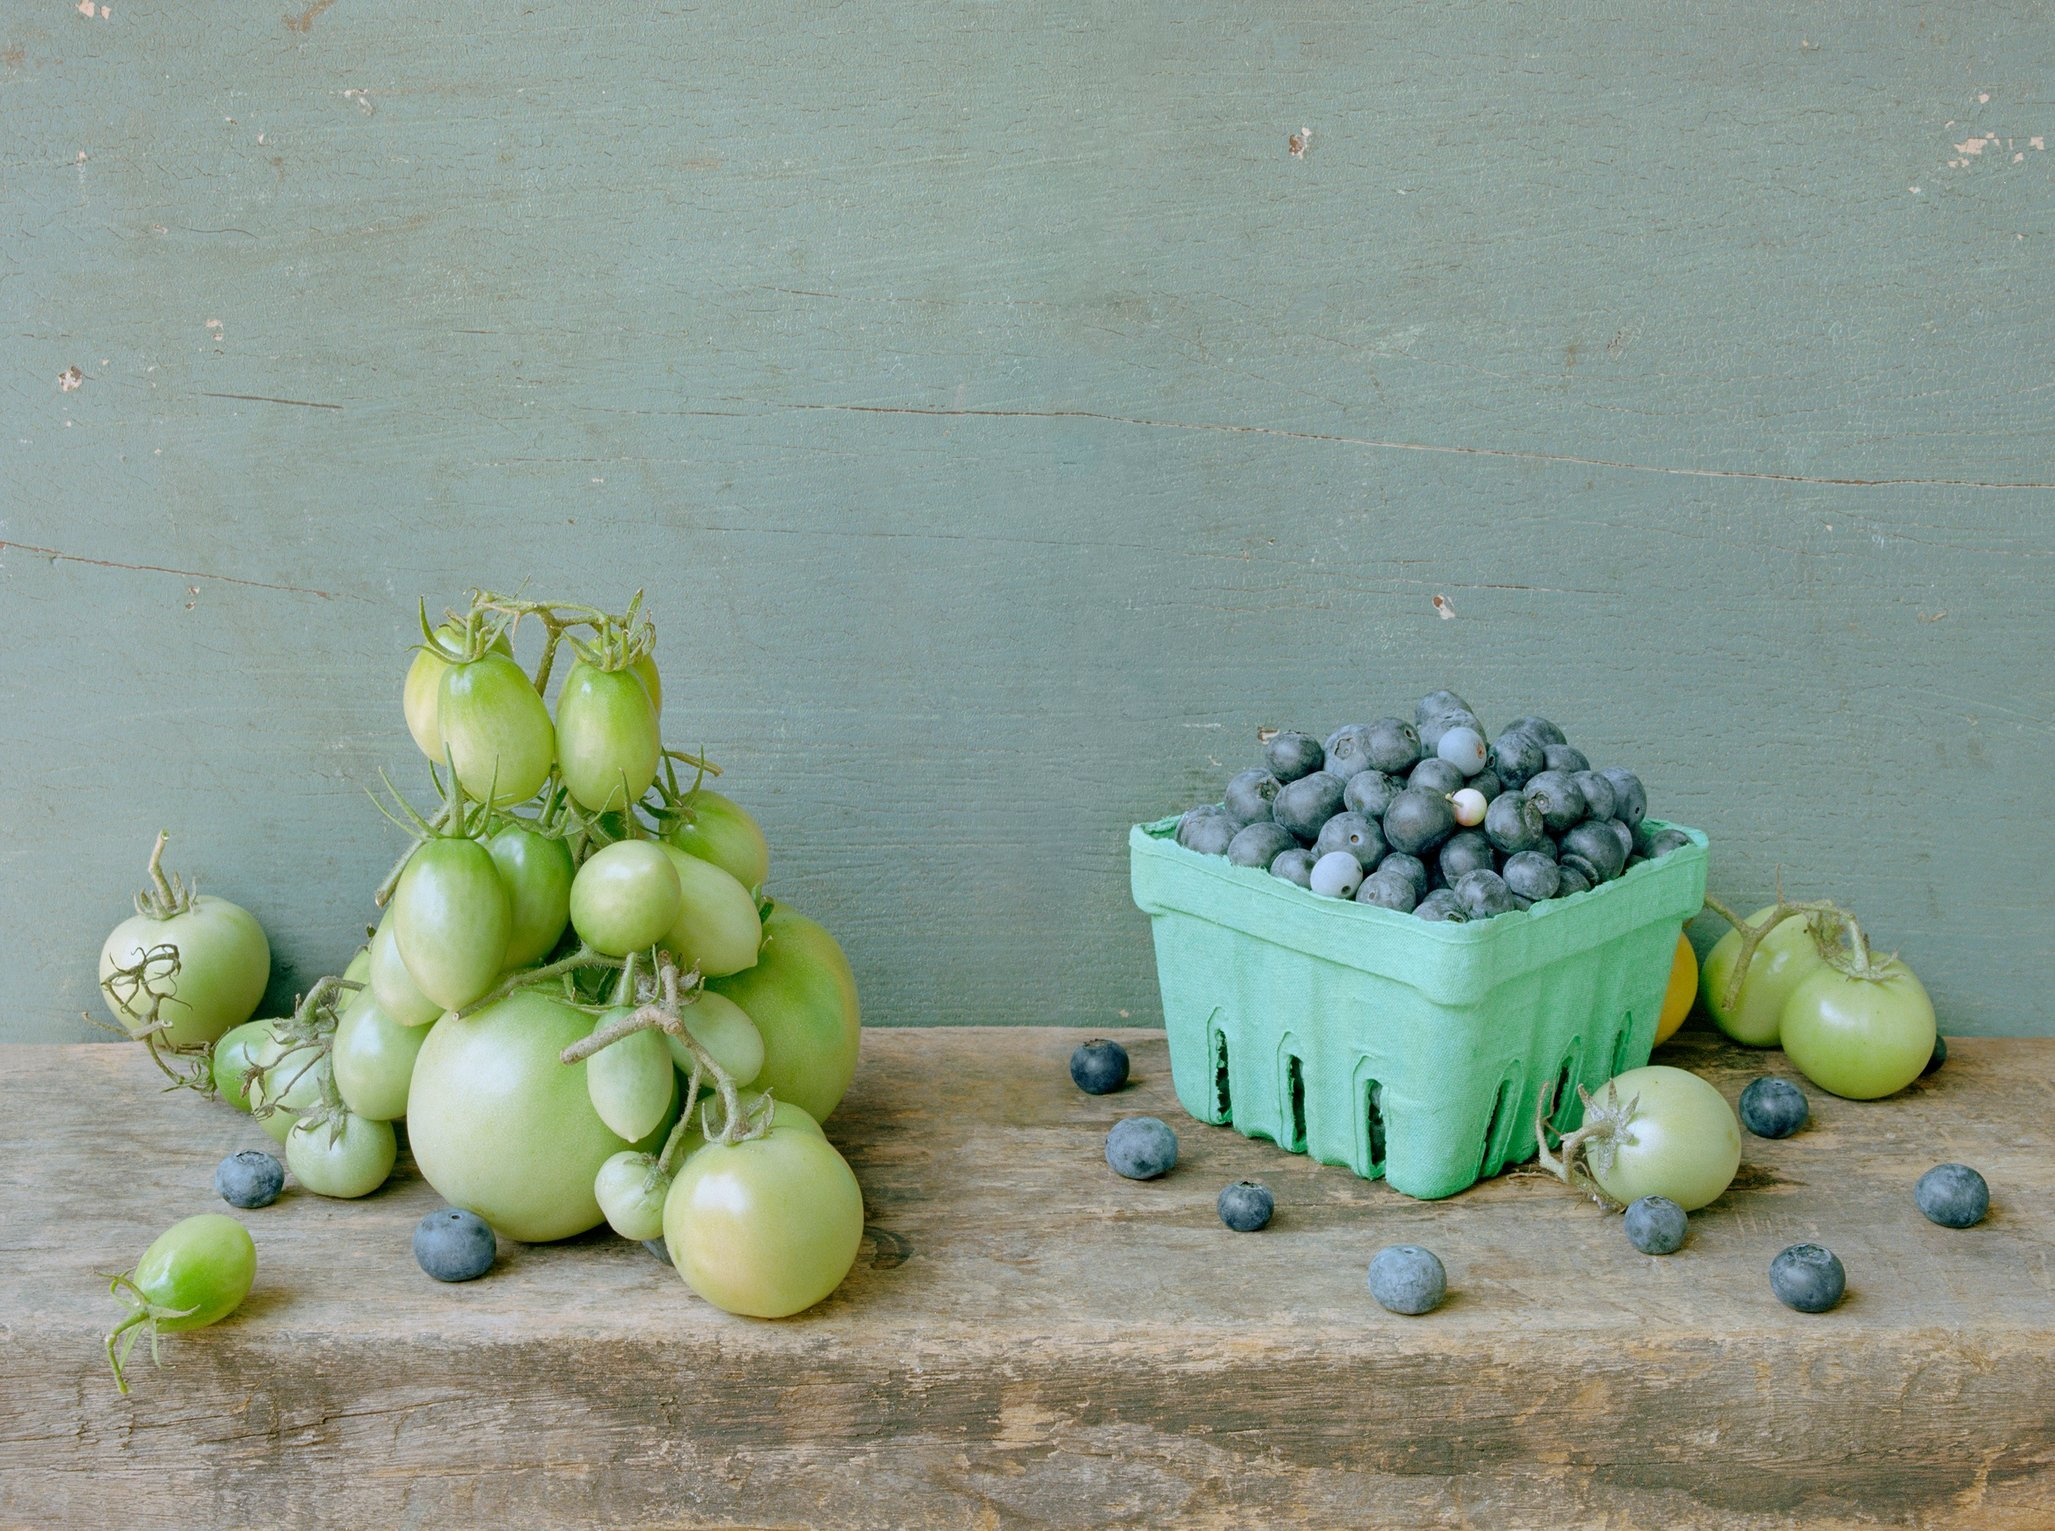 Green Tomatoes and Blueberries, c 2007